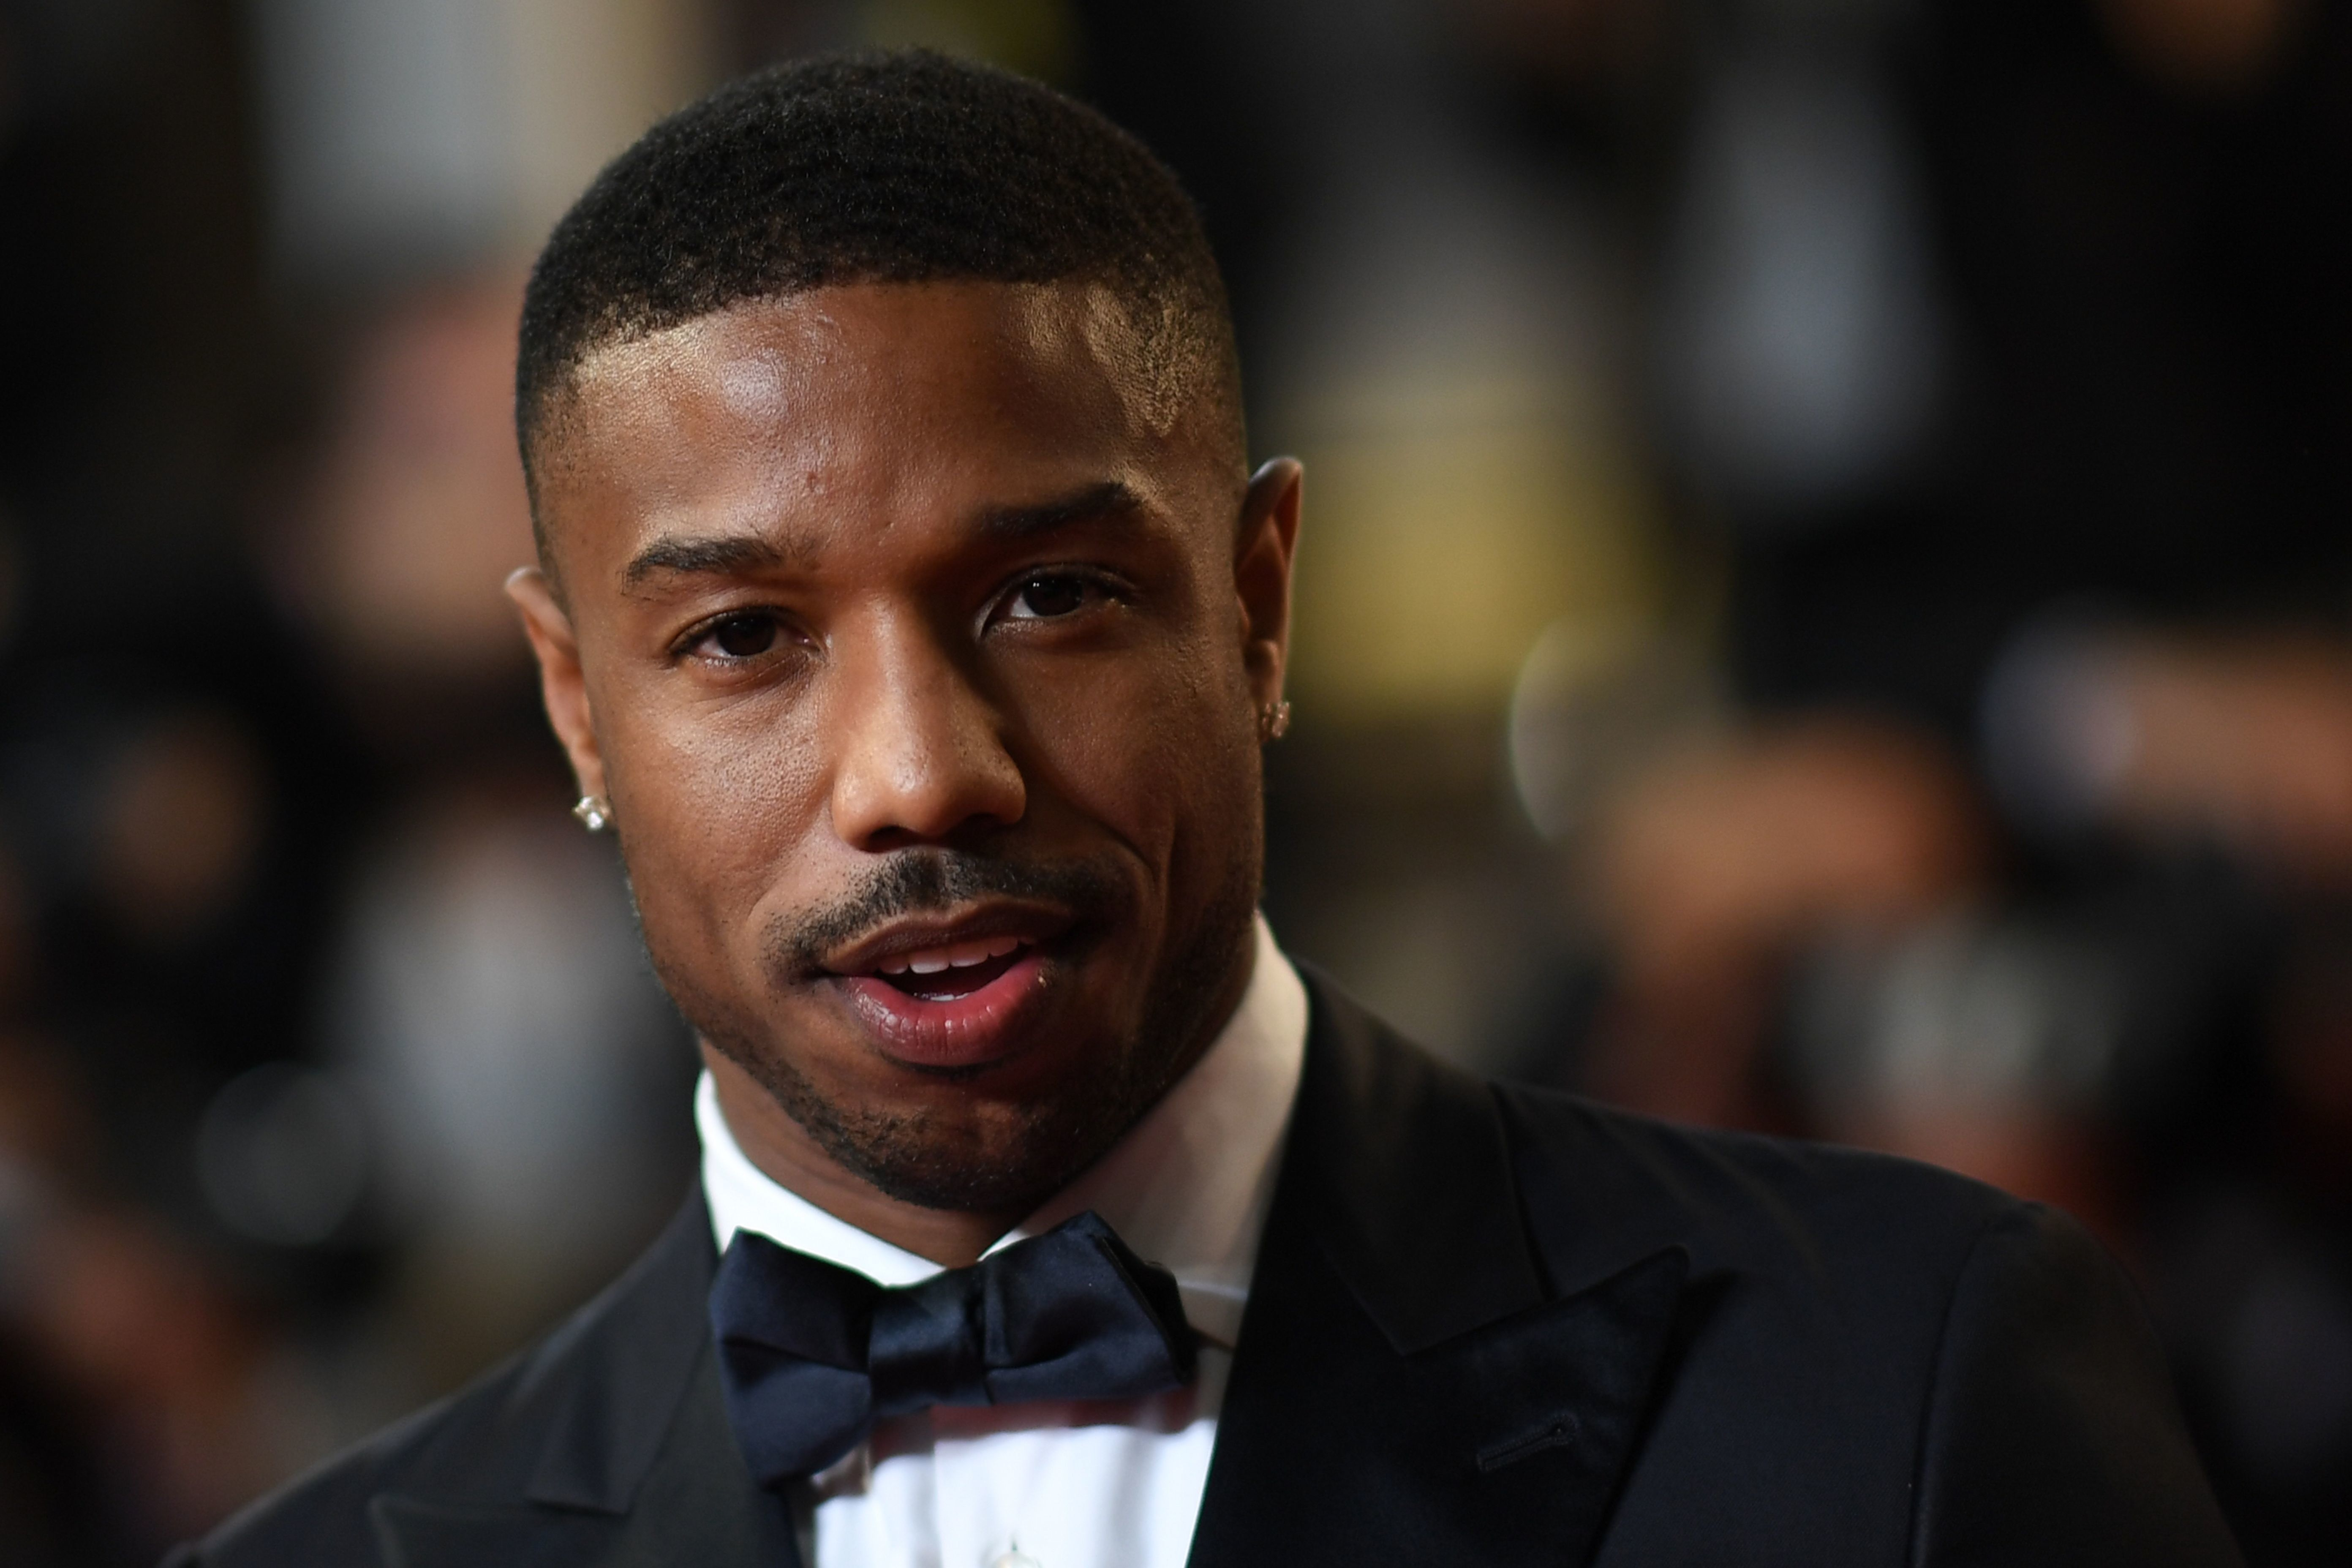 US actor Michael B. Jordan poses as he arrives on May 12, 2018 for the screening of the film 'Farenheit 451' at the 71st edition of the Cannes Film Festival in Cannes, southern France. (Photo by LOIC VENANCE / AFP)        (Photo credit should read LOIC VENANCE/AFP/Getty Images)